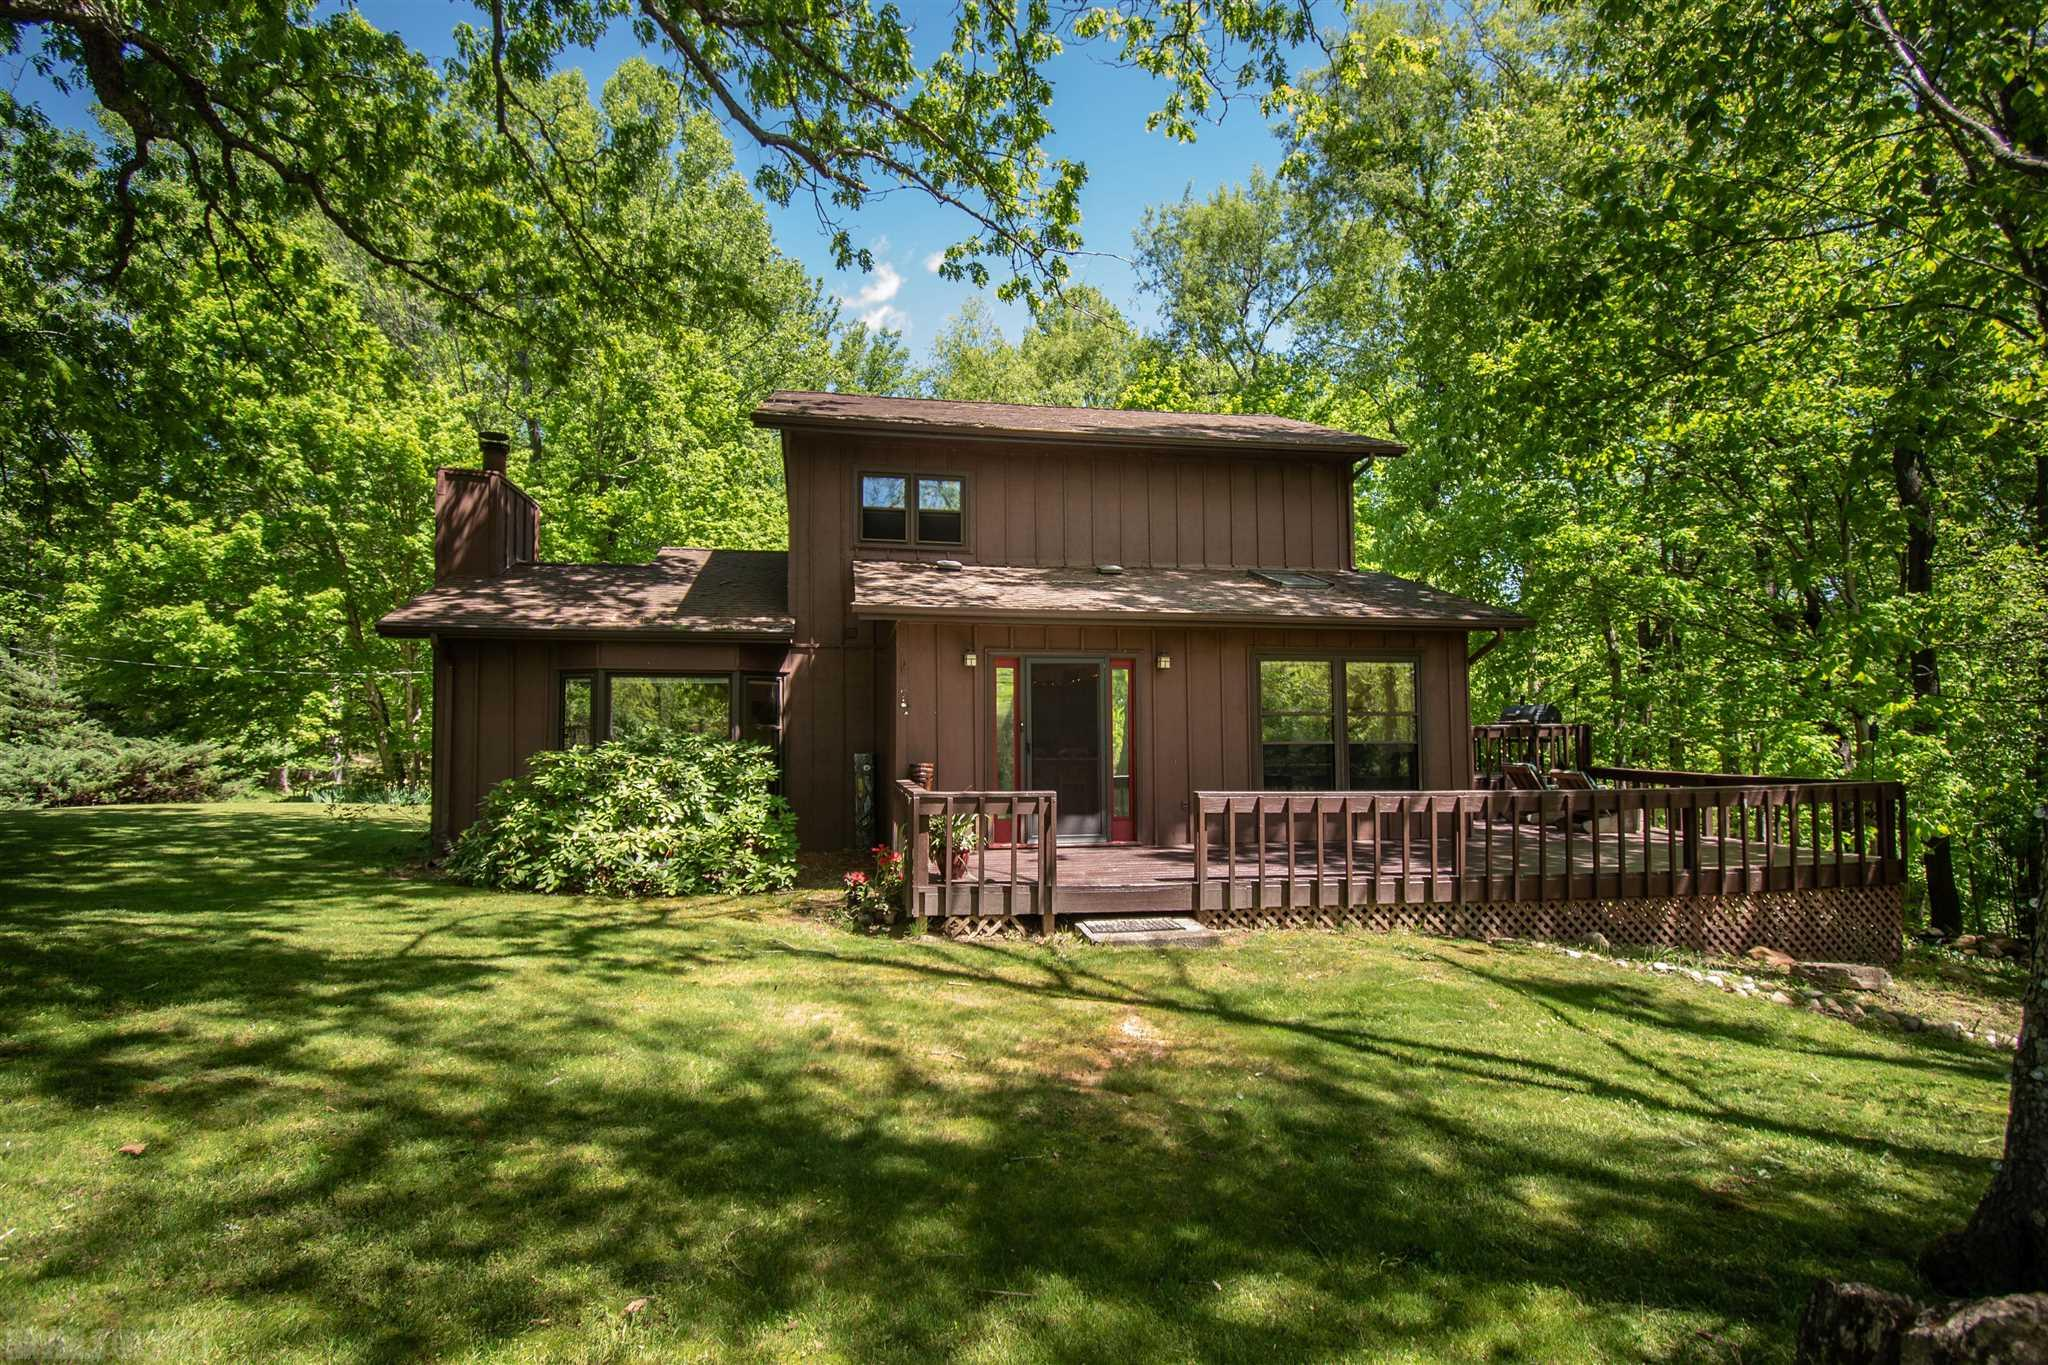 This home is perfect for nature lovers or anyone who enjoys the feeling of the country. Enjoy the recently updated deck that overlooks the beautiful fish pond and secluded wooded area. This home includes a two-car garage and a stunning architectural design that can be seen outside and inside of the home.  Also included is a breakfast bar, a full bathroom and master bedroom on the main floor, and two bedrooms with full bath on the second floor. Enjoy this home just in time for summer!